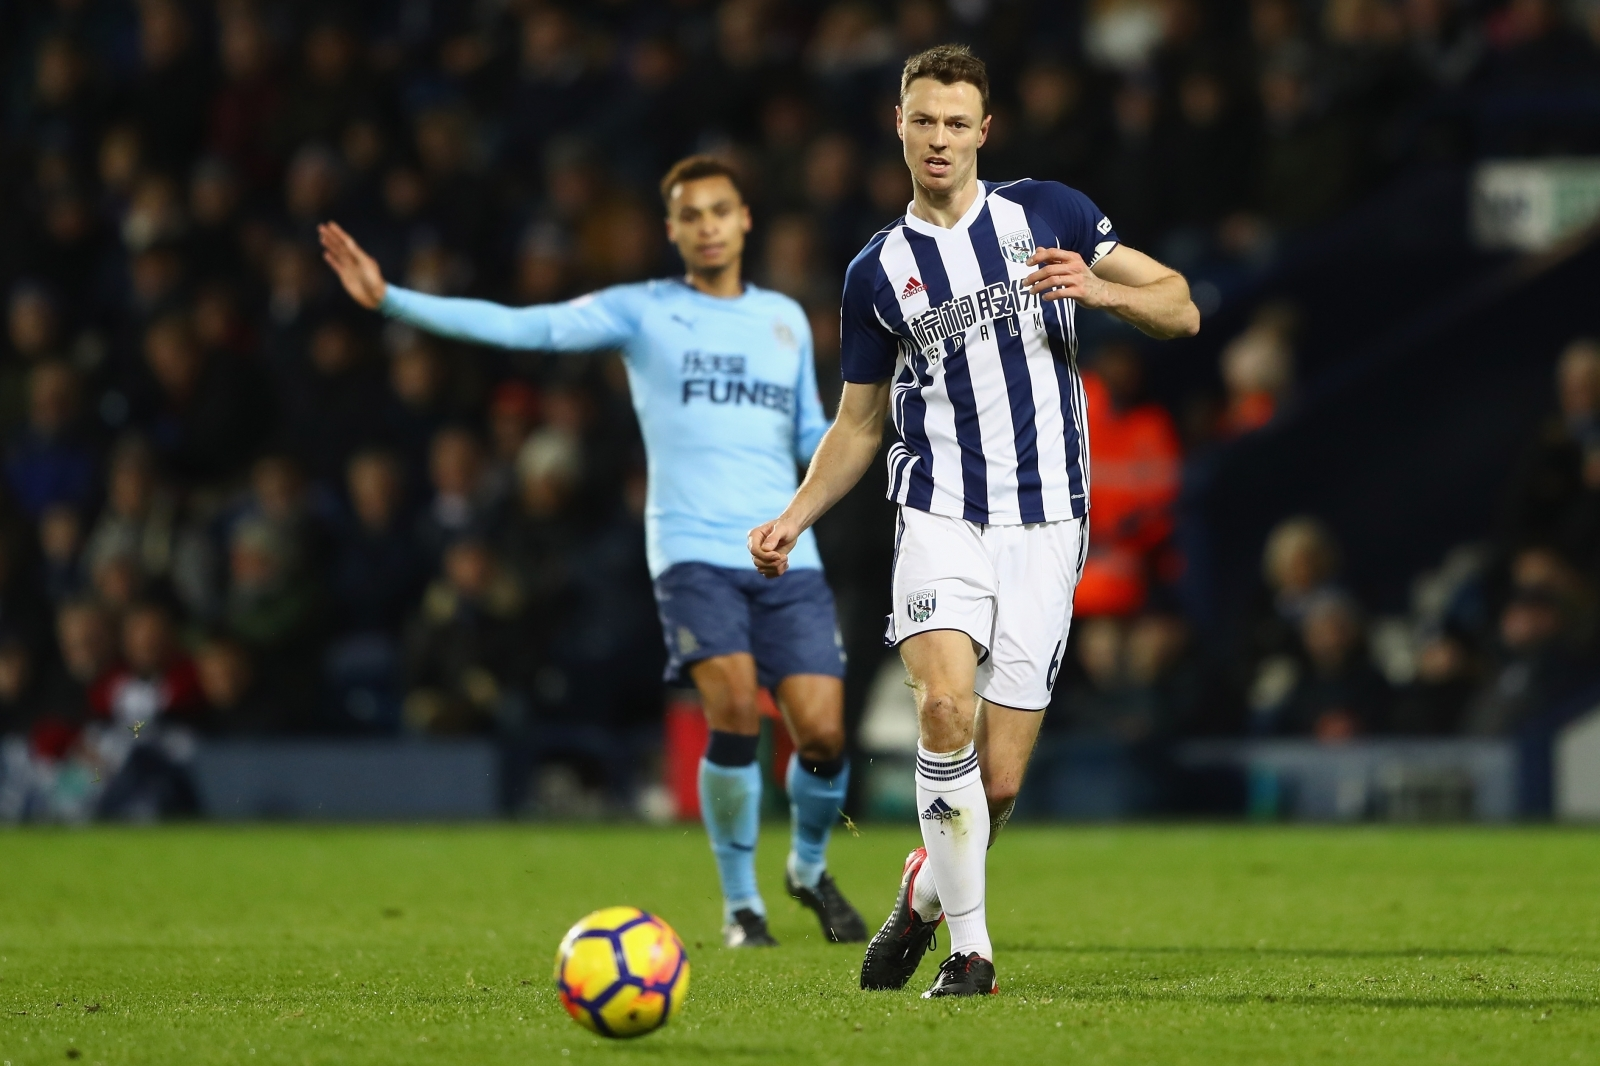 West Brom Captain, Jonny Evans set to leave club in January